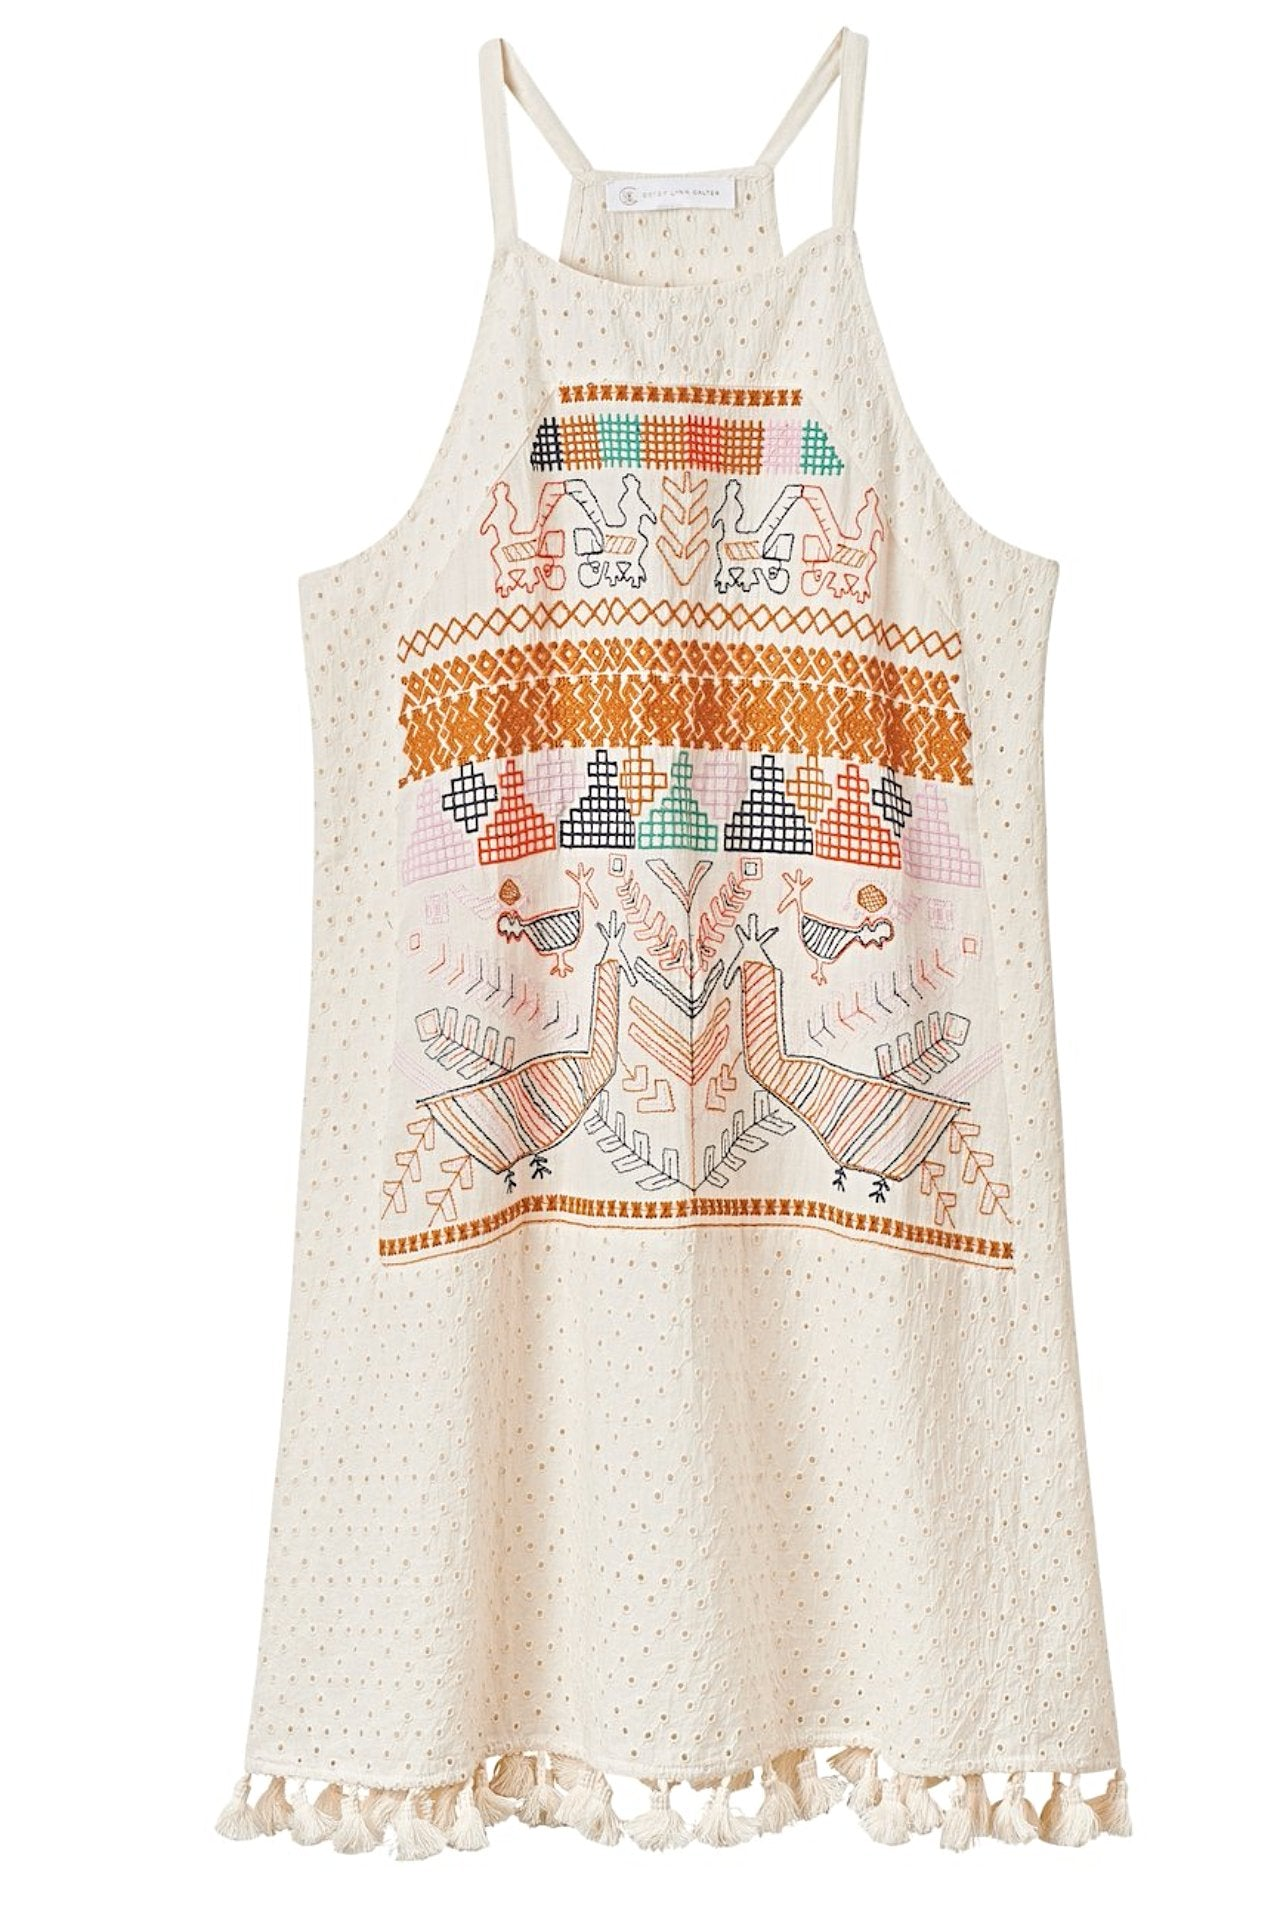 ZOLITA Embroidered Dress with Tassels